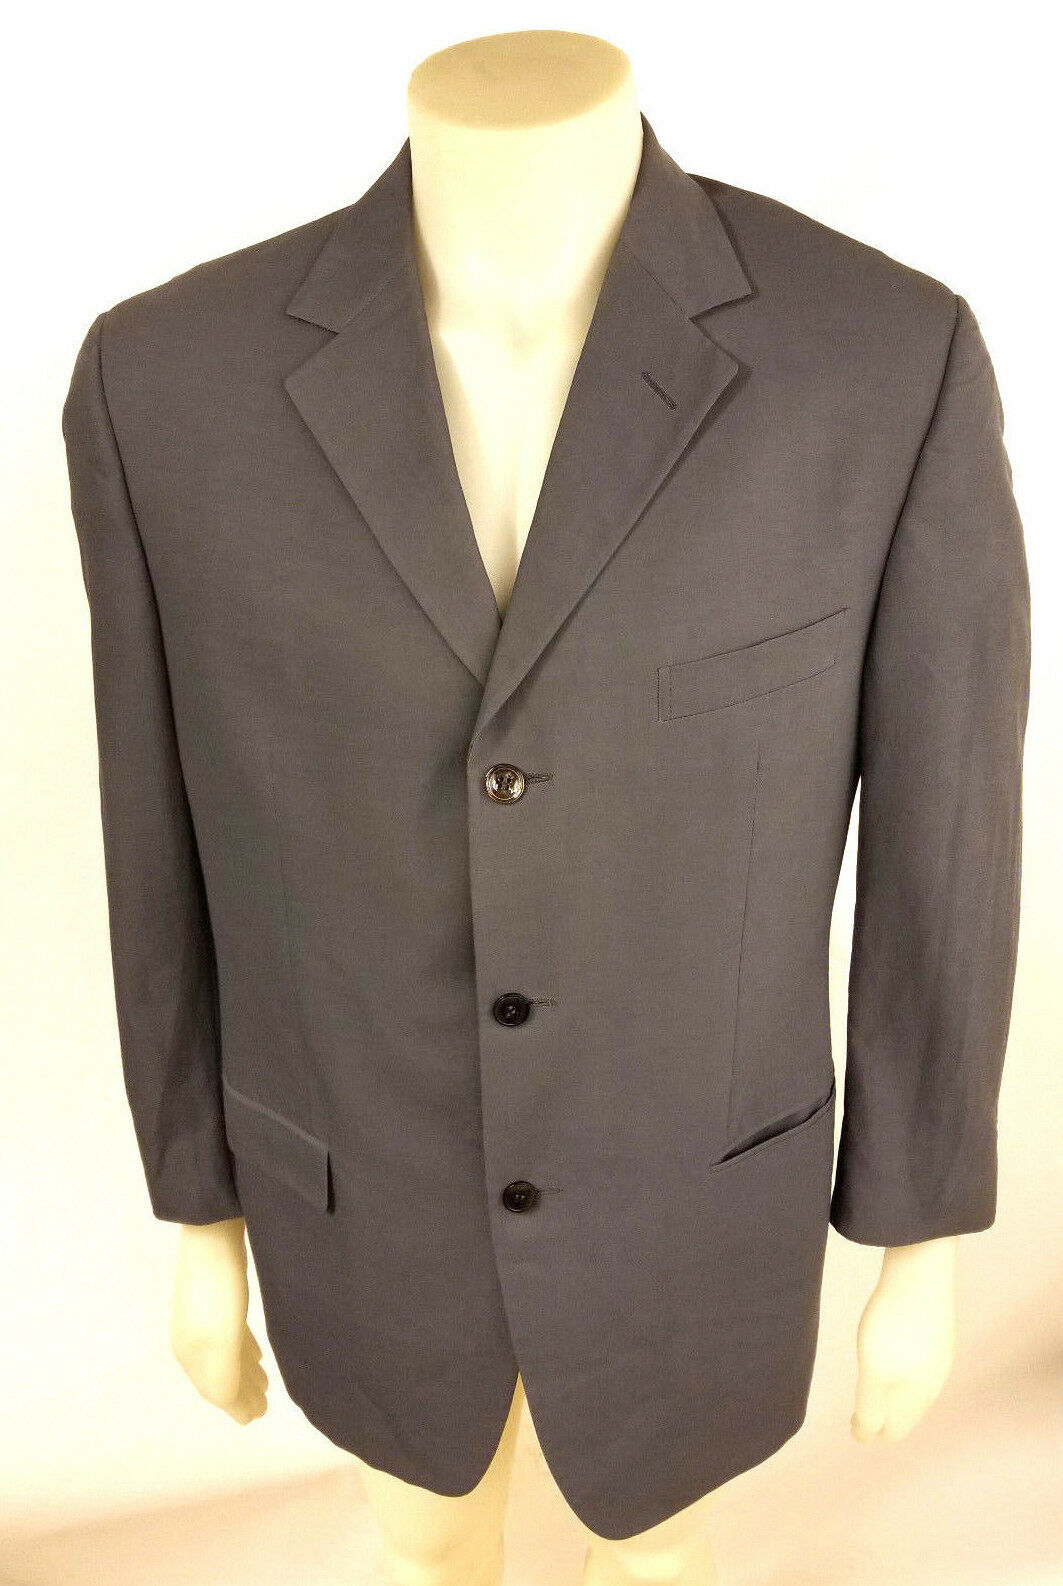 ERMENEGILDO ZEGNA MEN SOFT SHELL 3 BUTTON SUIT grau RAYON/COTTON (52R PANT 32W)